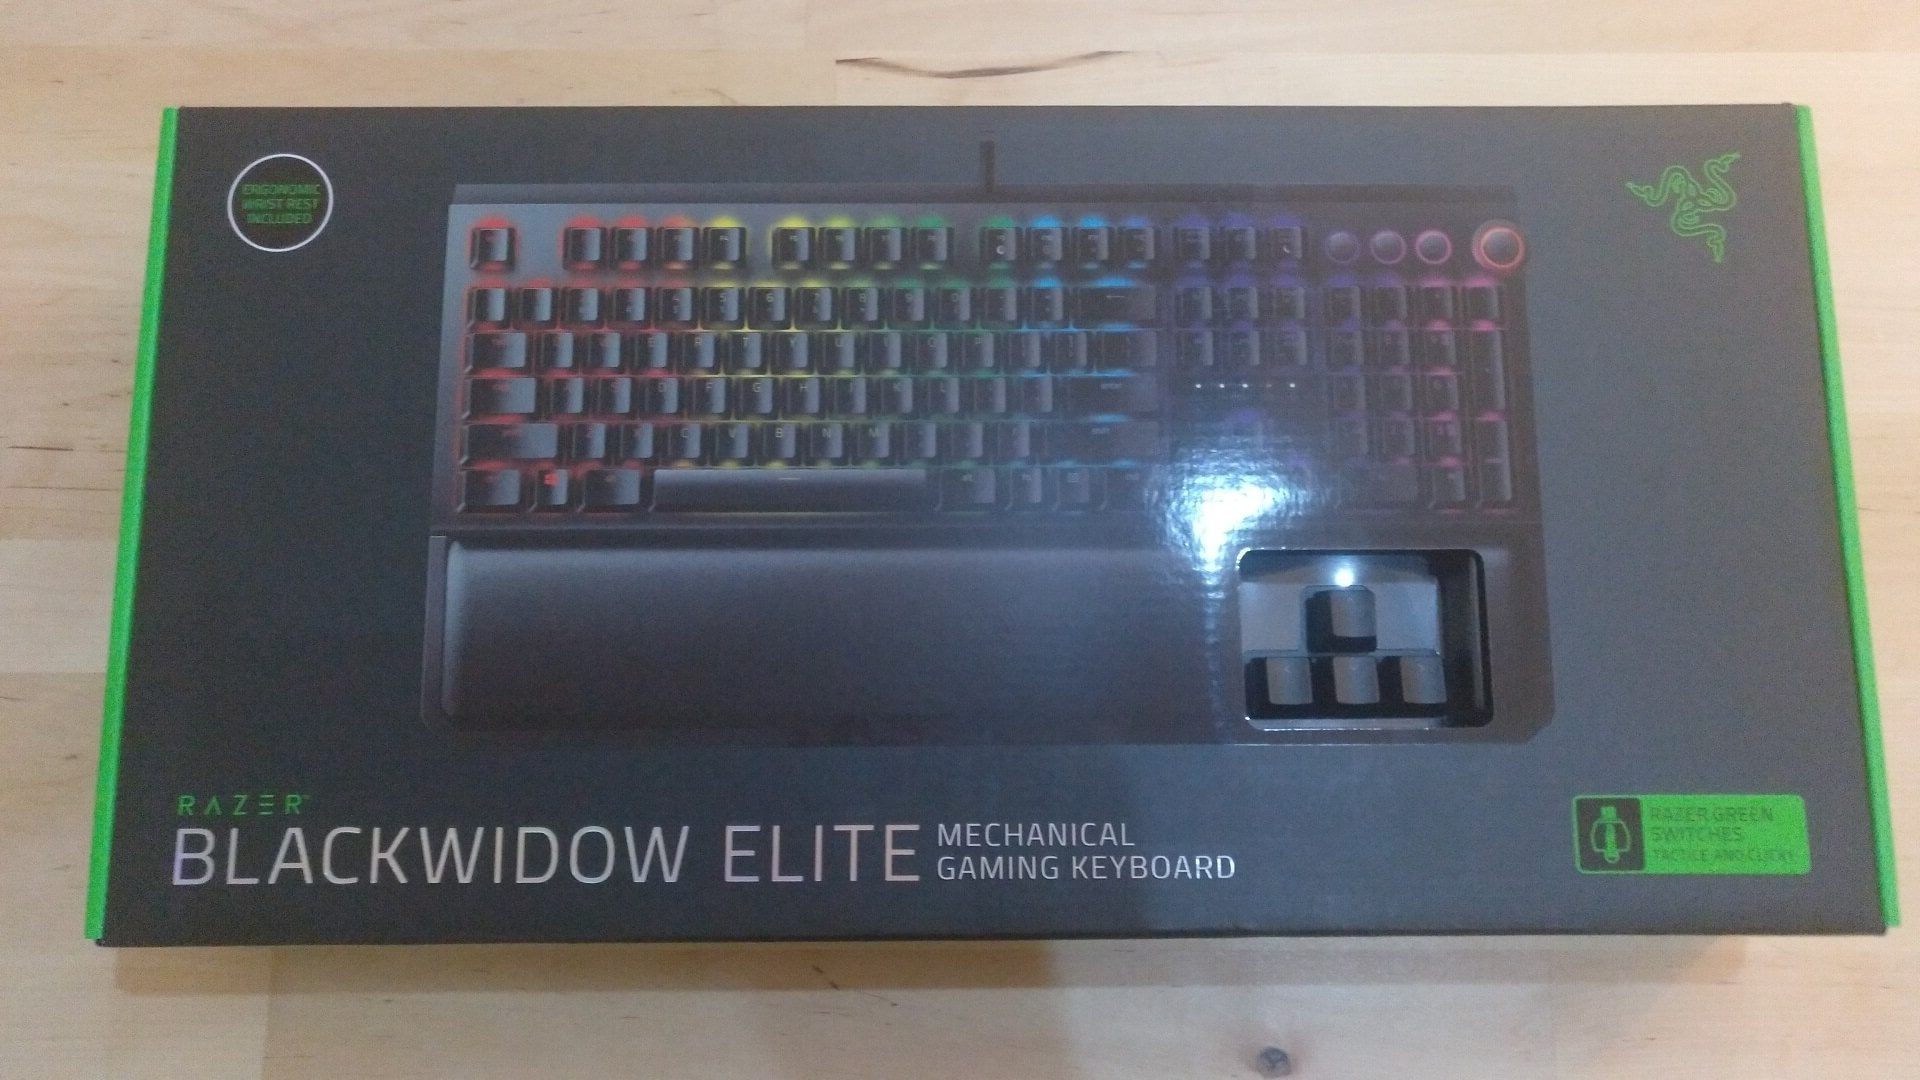 [Review] Teclado Razer Blackwidow Elite